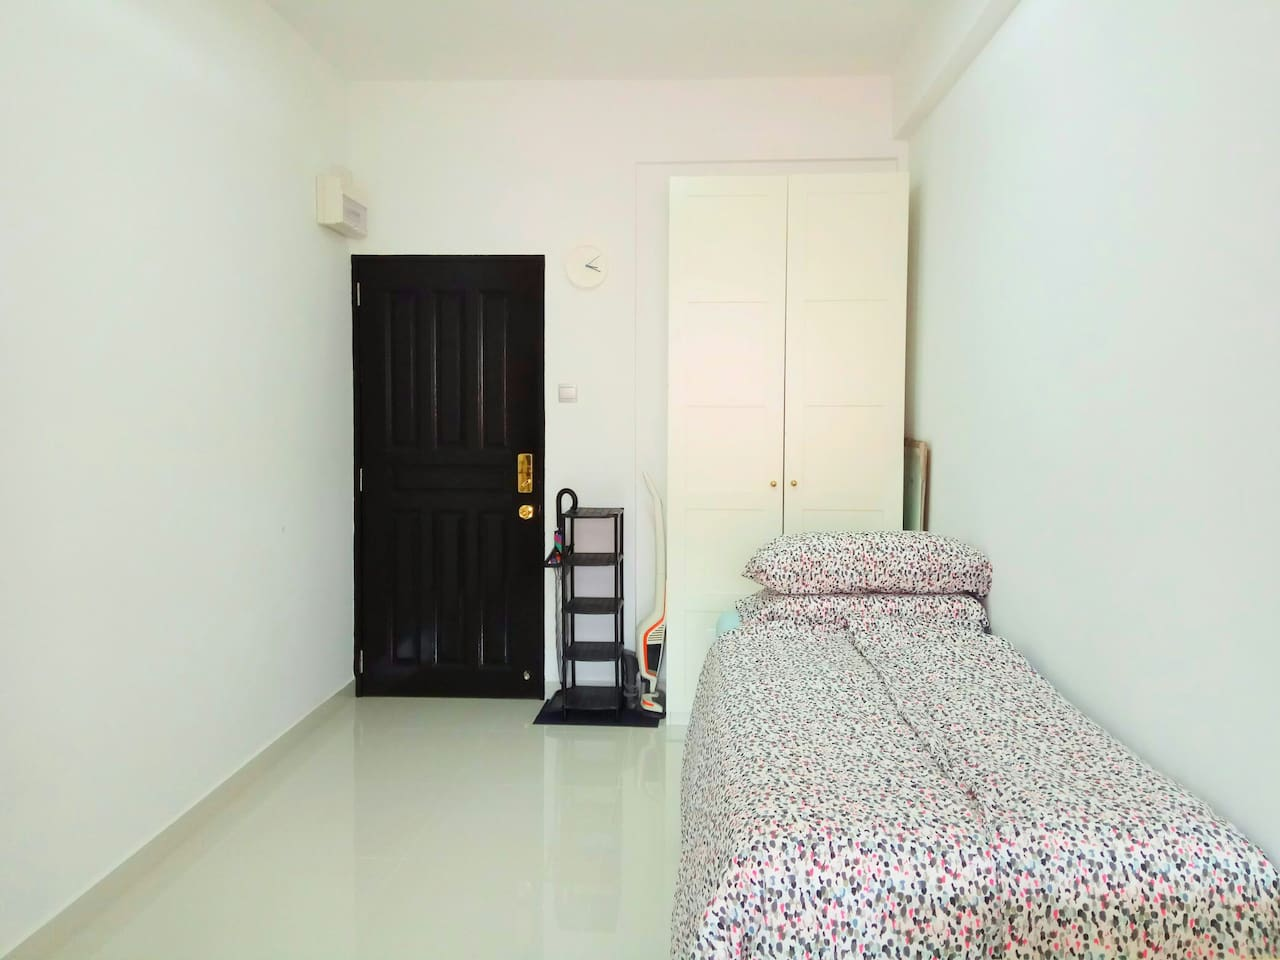 Clean, bright space with private entrance secured by digital lock, shoe rack and umbrella stand, wardrobe and bed.